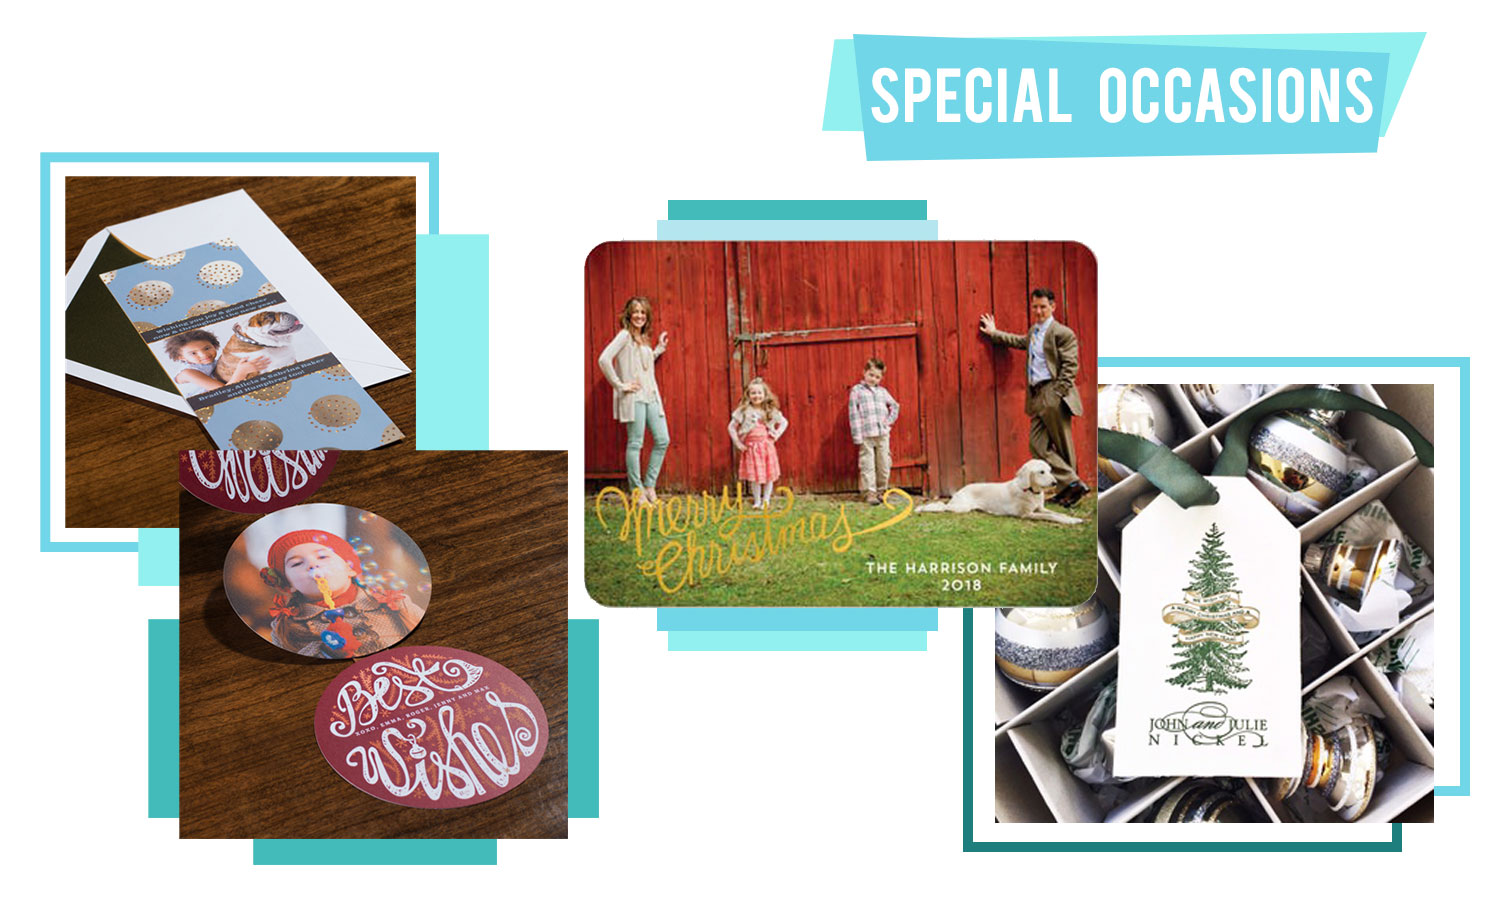 special-occasions-banner.jpg